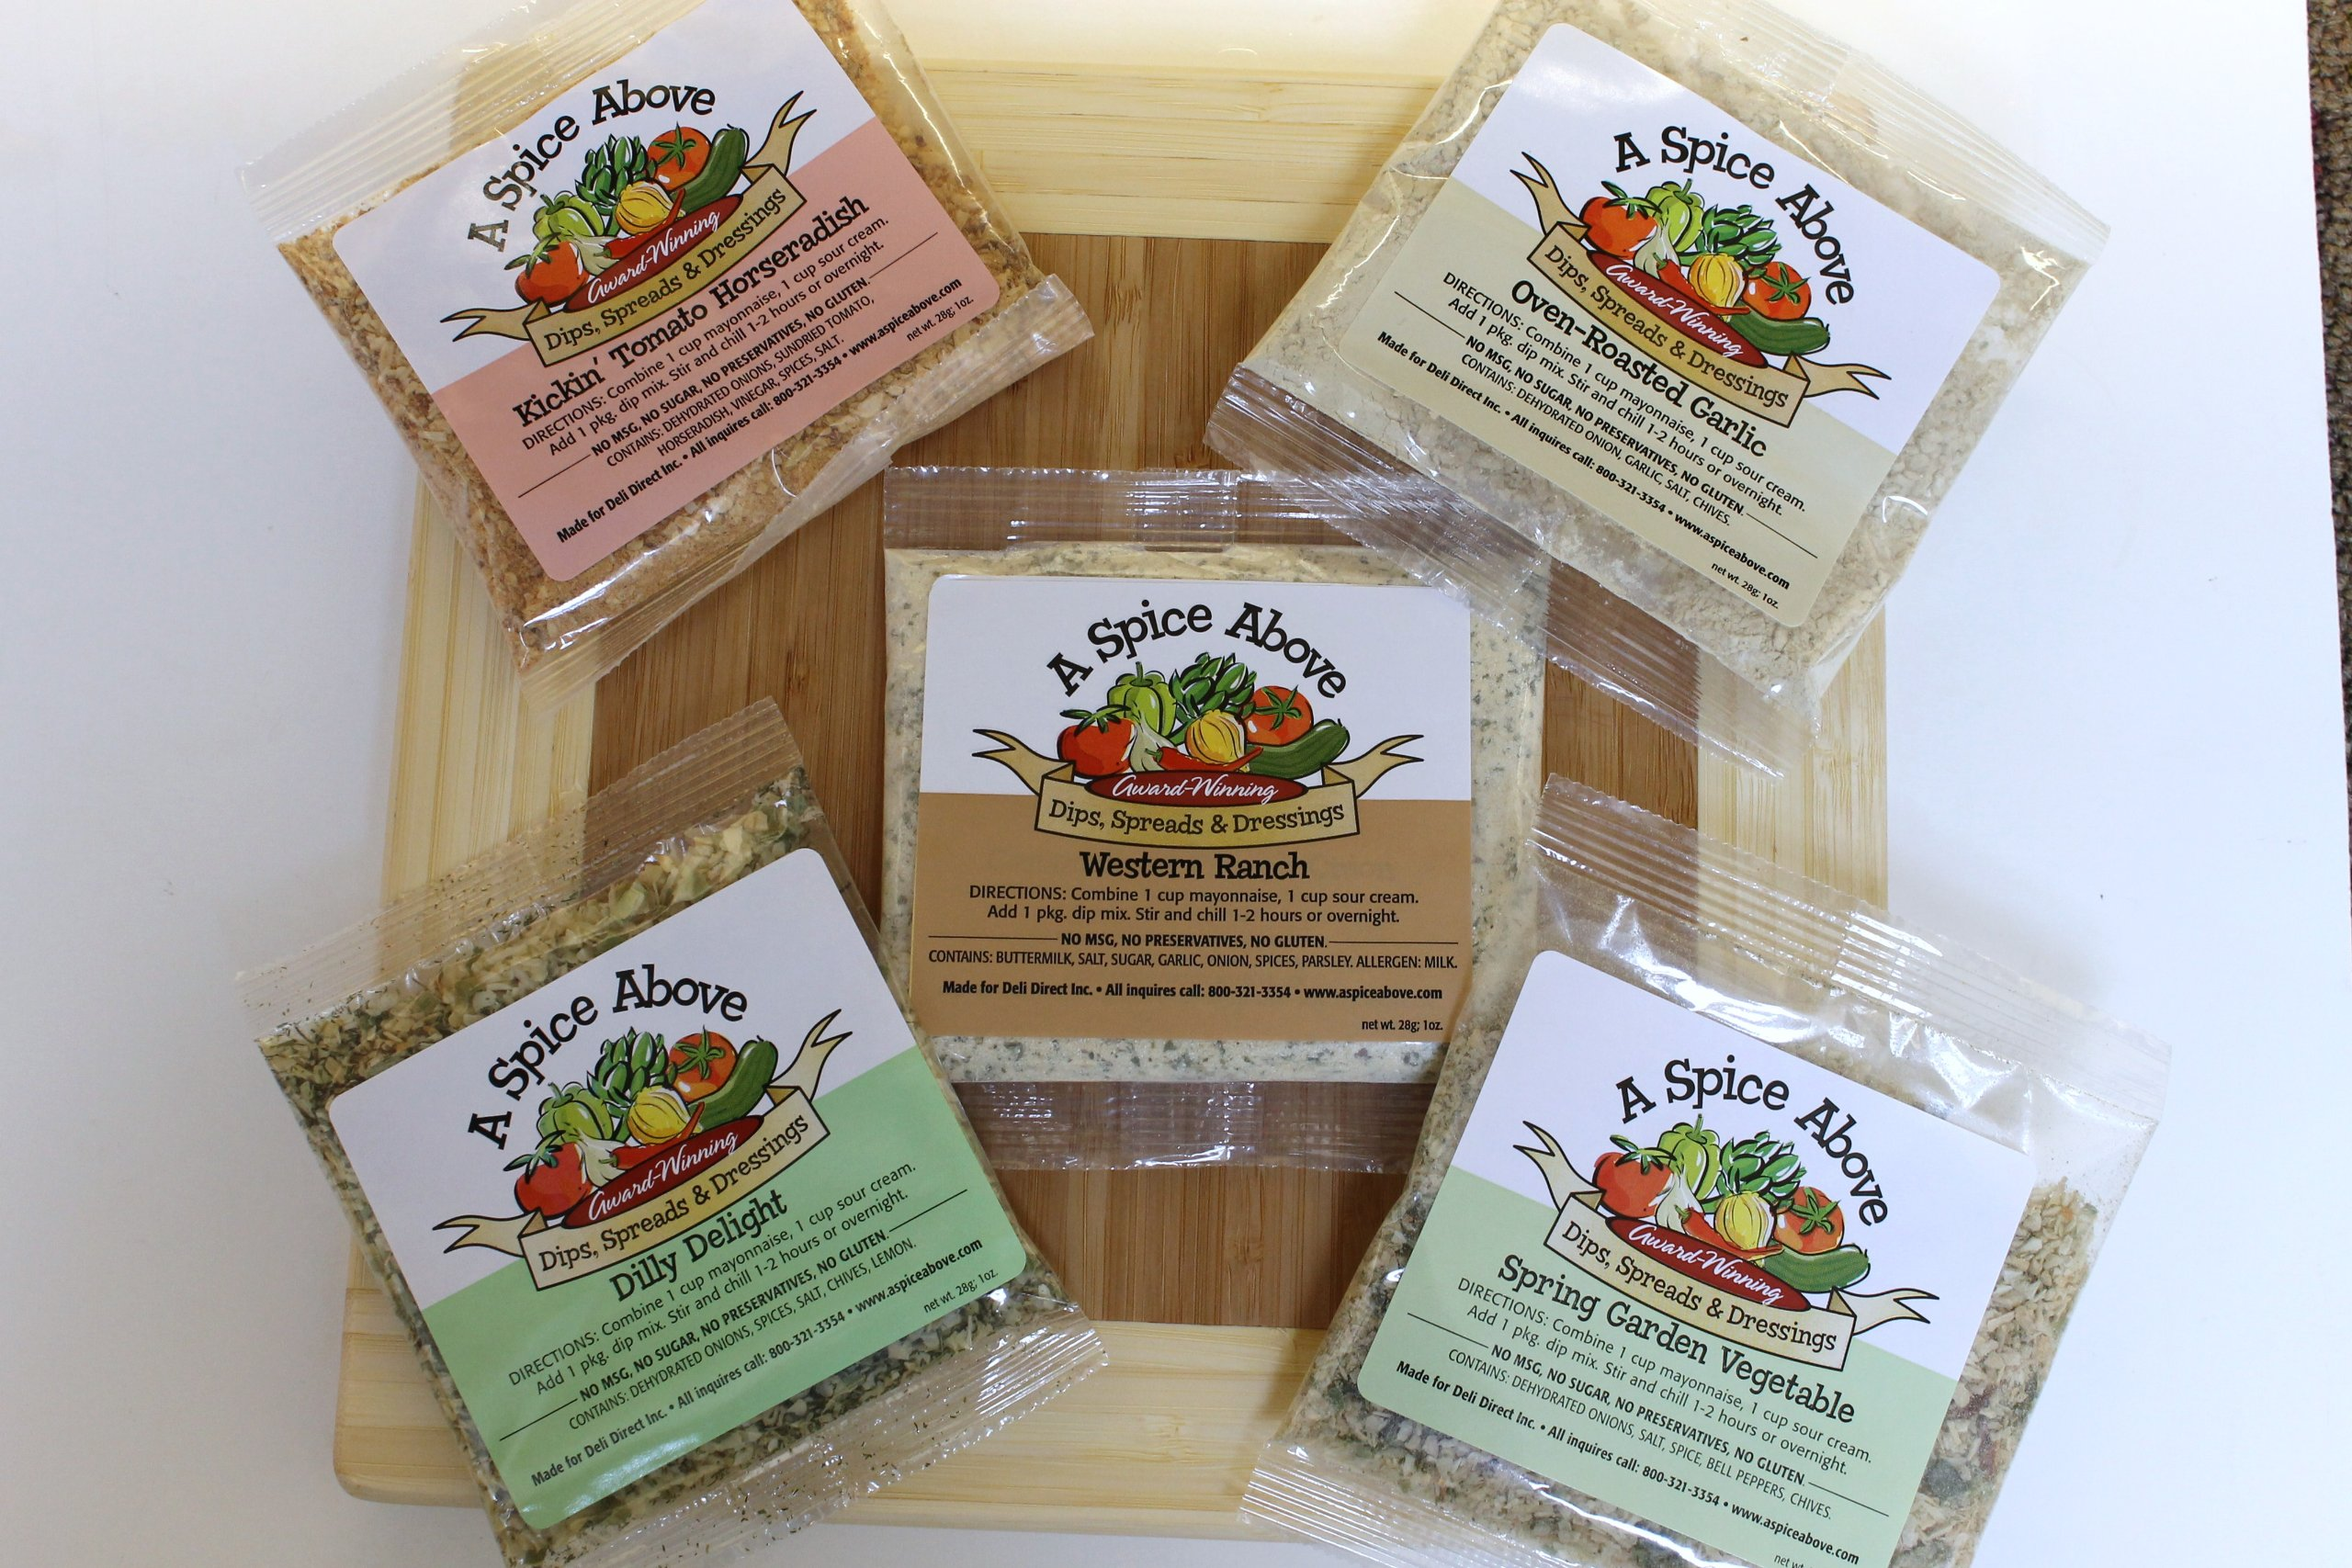 A Spice Above Variety Pack of 5 Dips by Deli Direct/A Spice Above